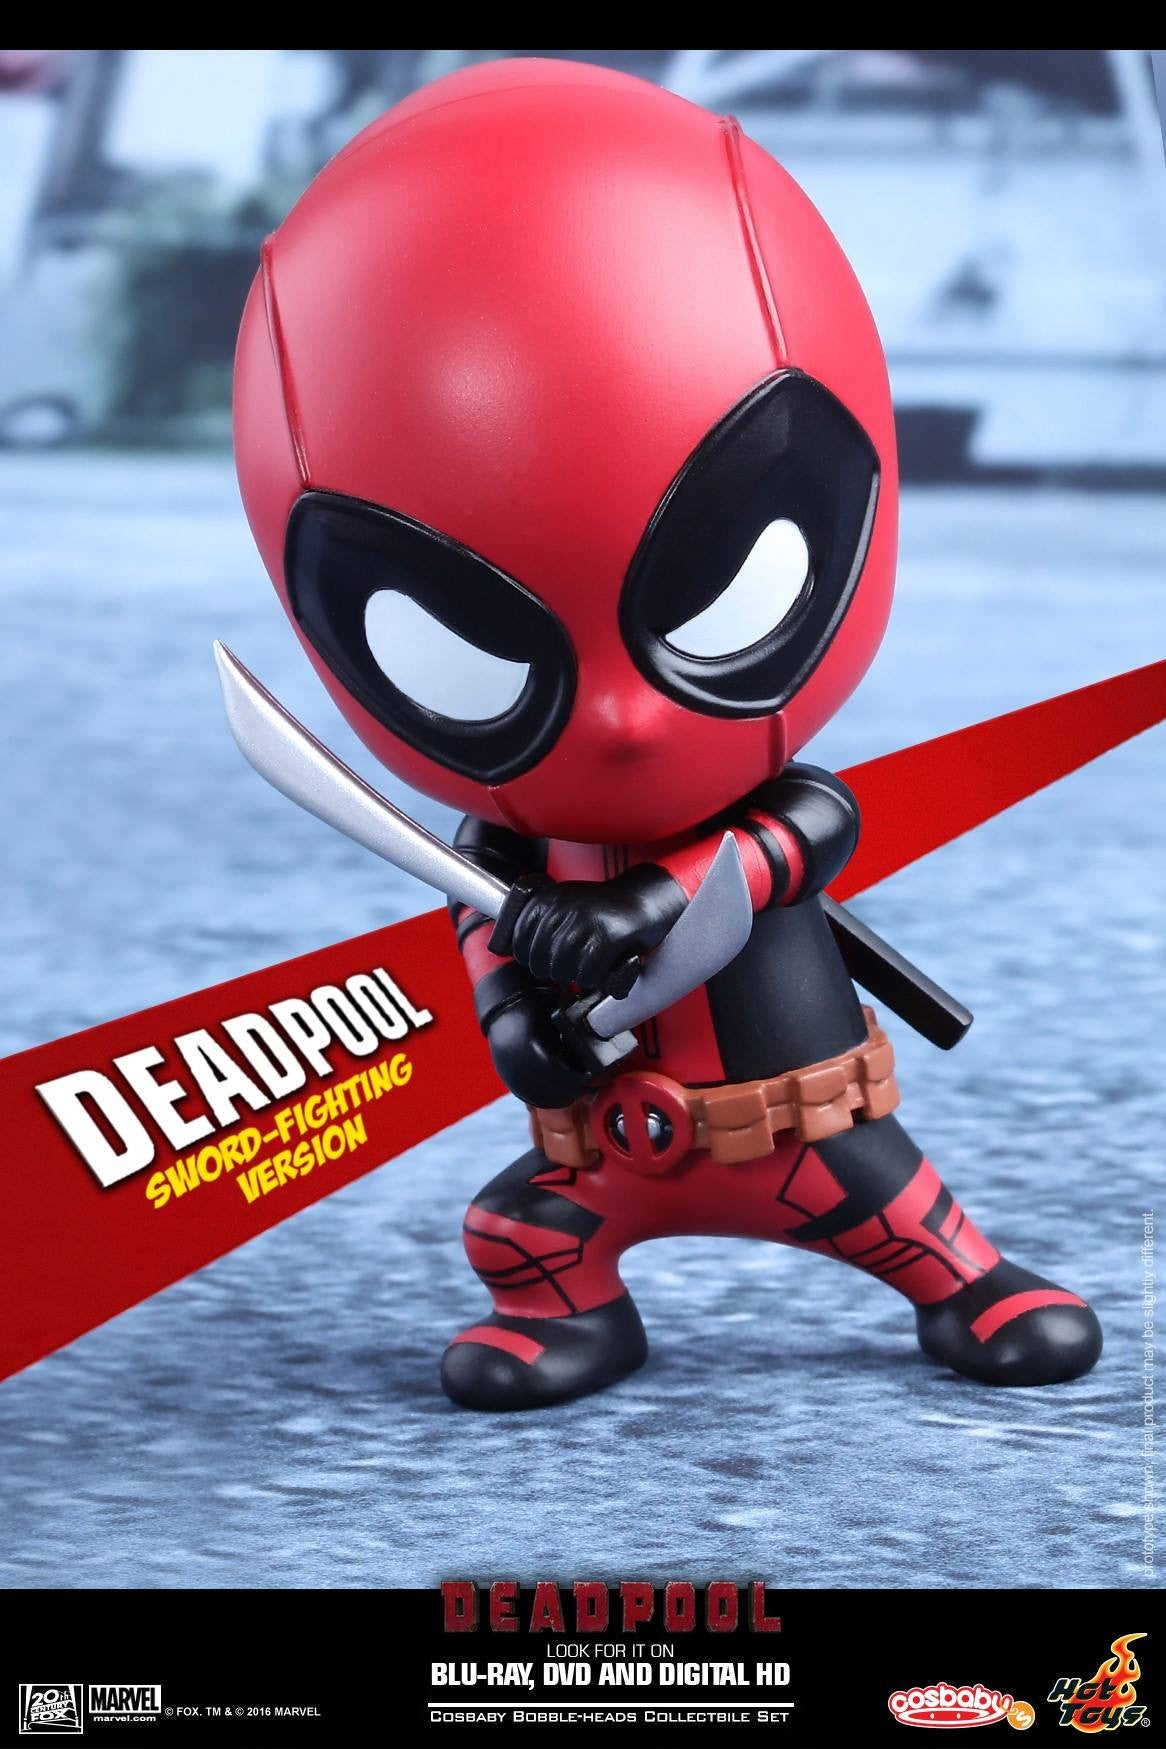 Hot Toys - COSB220 - Deadpool (Sword-Fighting Version) Cosbaby Bobble-Head - Marvelous Toys - 1